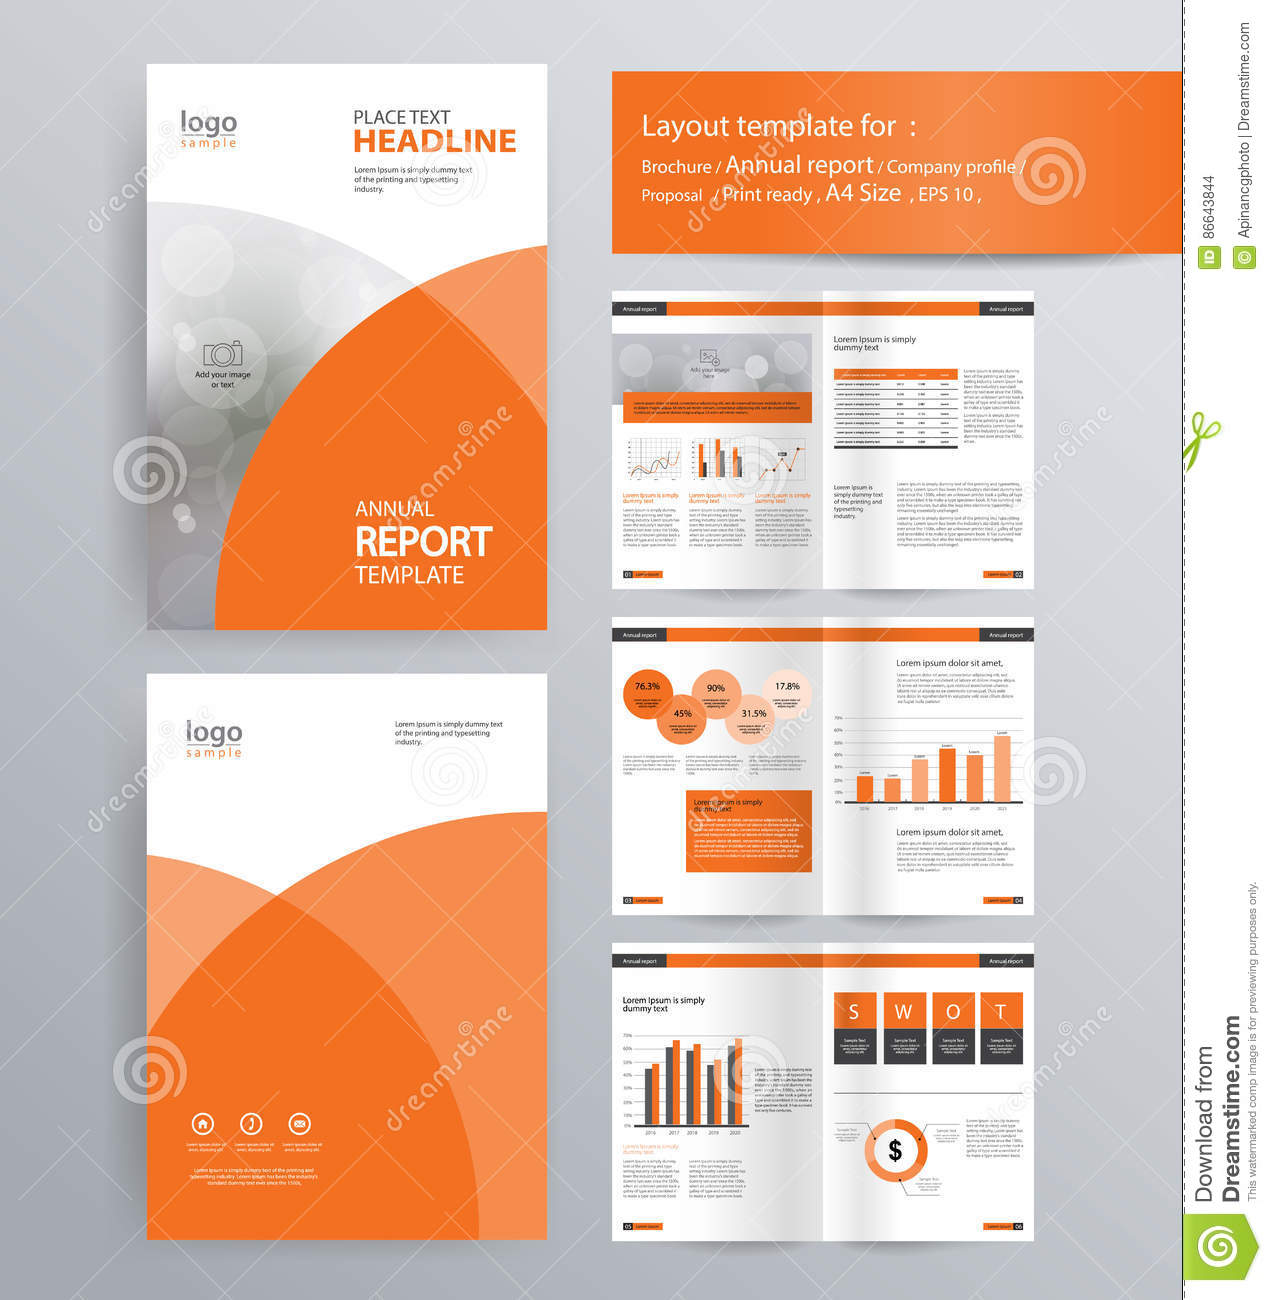 page layout for company profile annual report and brochure template design business